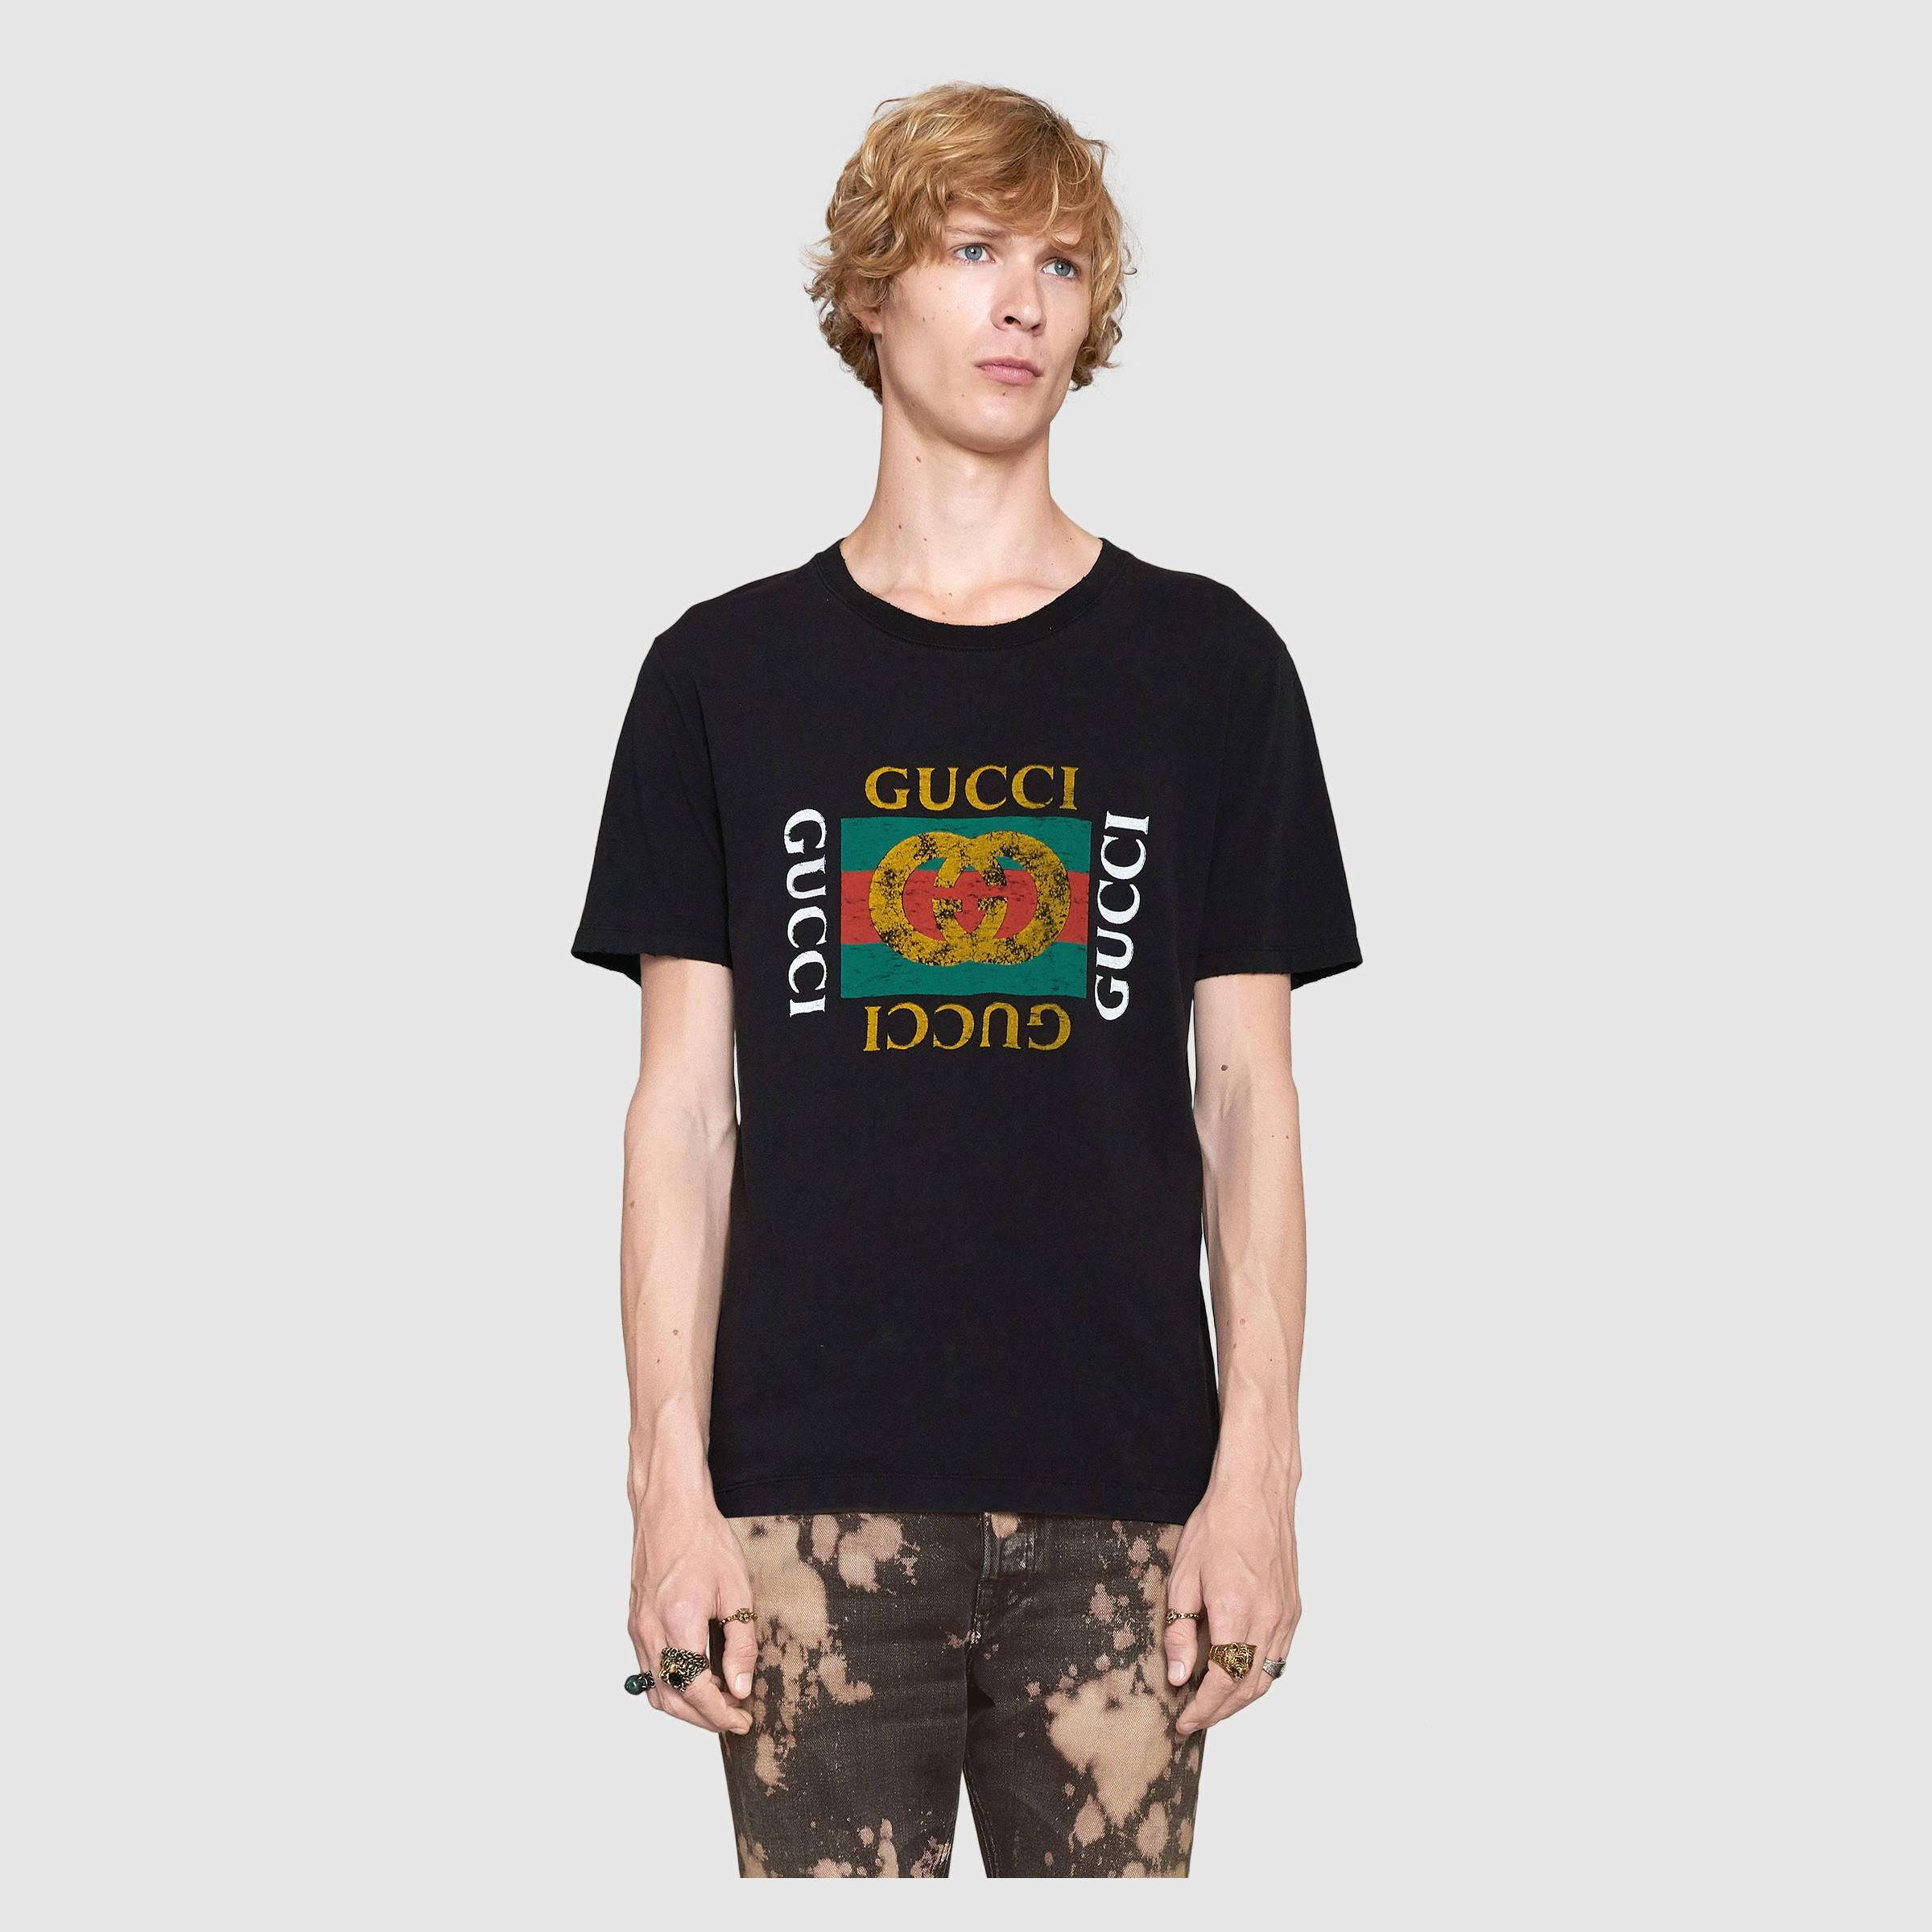 705d024c7ba Gucci Washed T-shirt With Print in Black for Men - Lyst